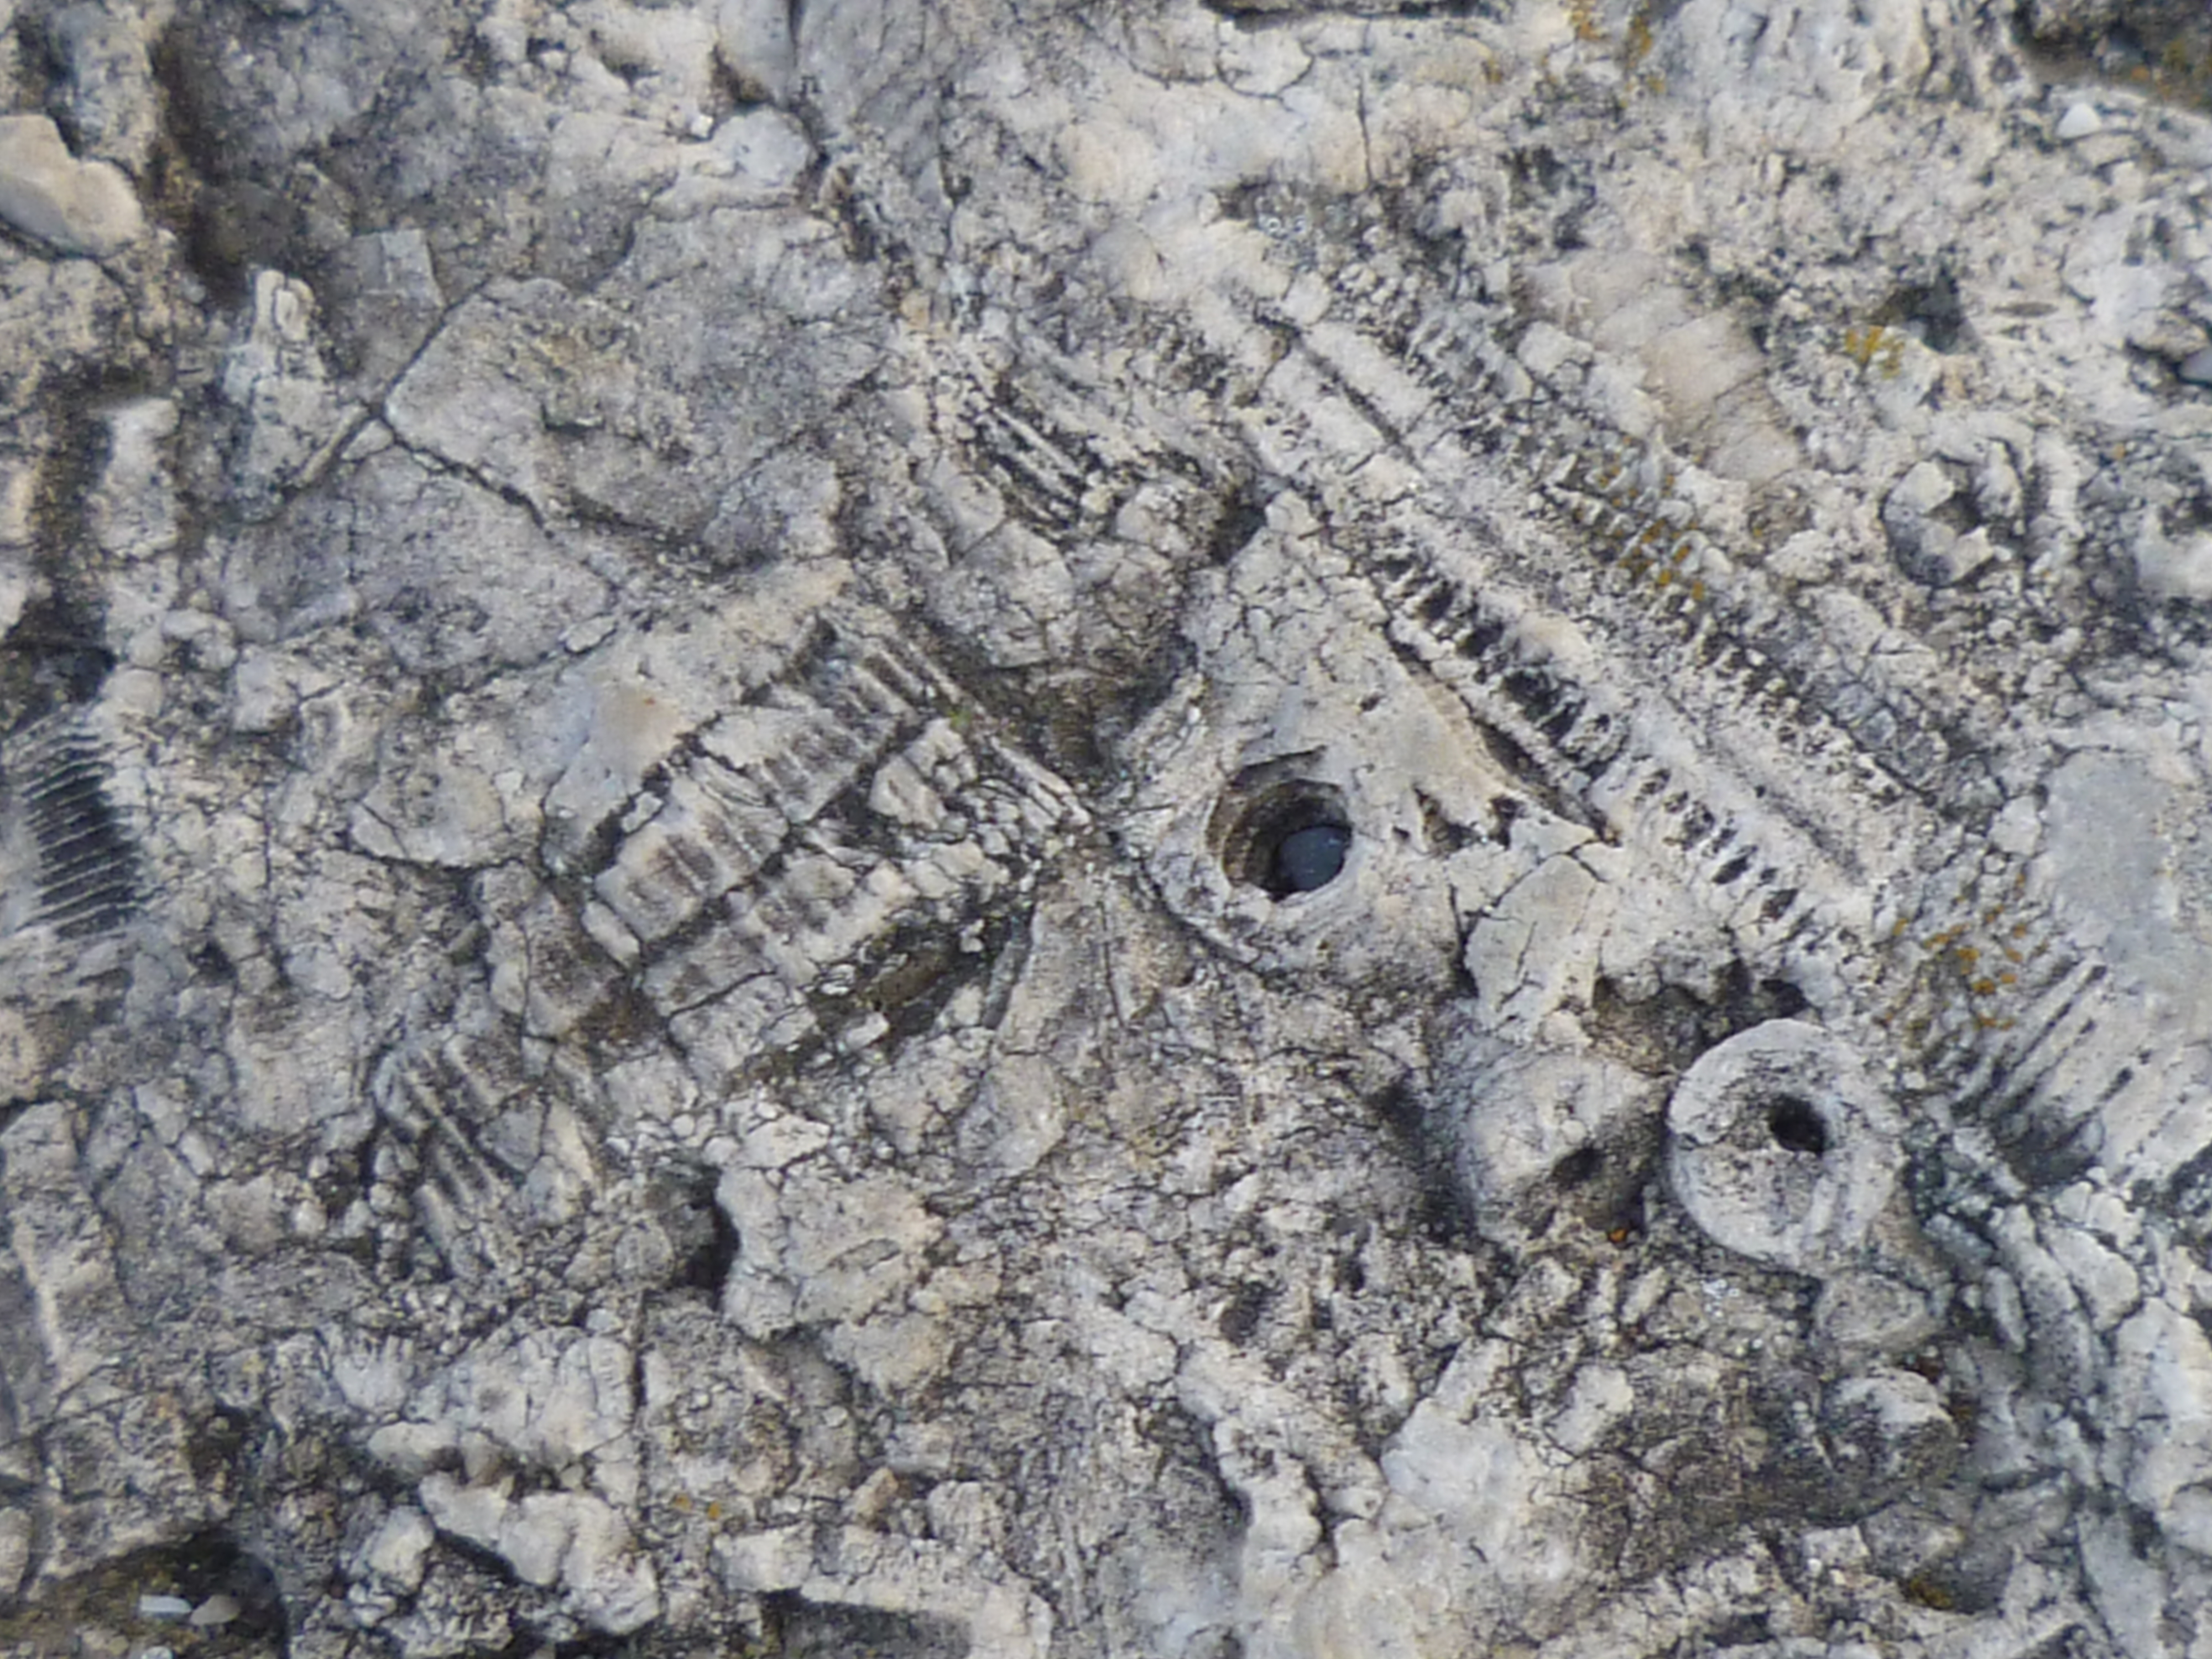 Fossils embedded in the rock.